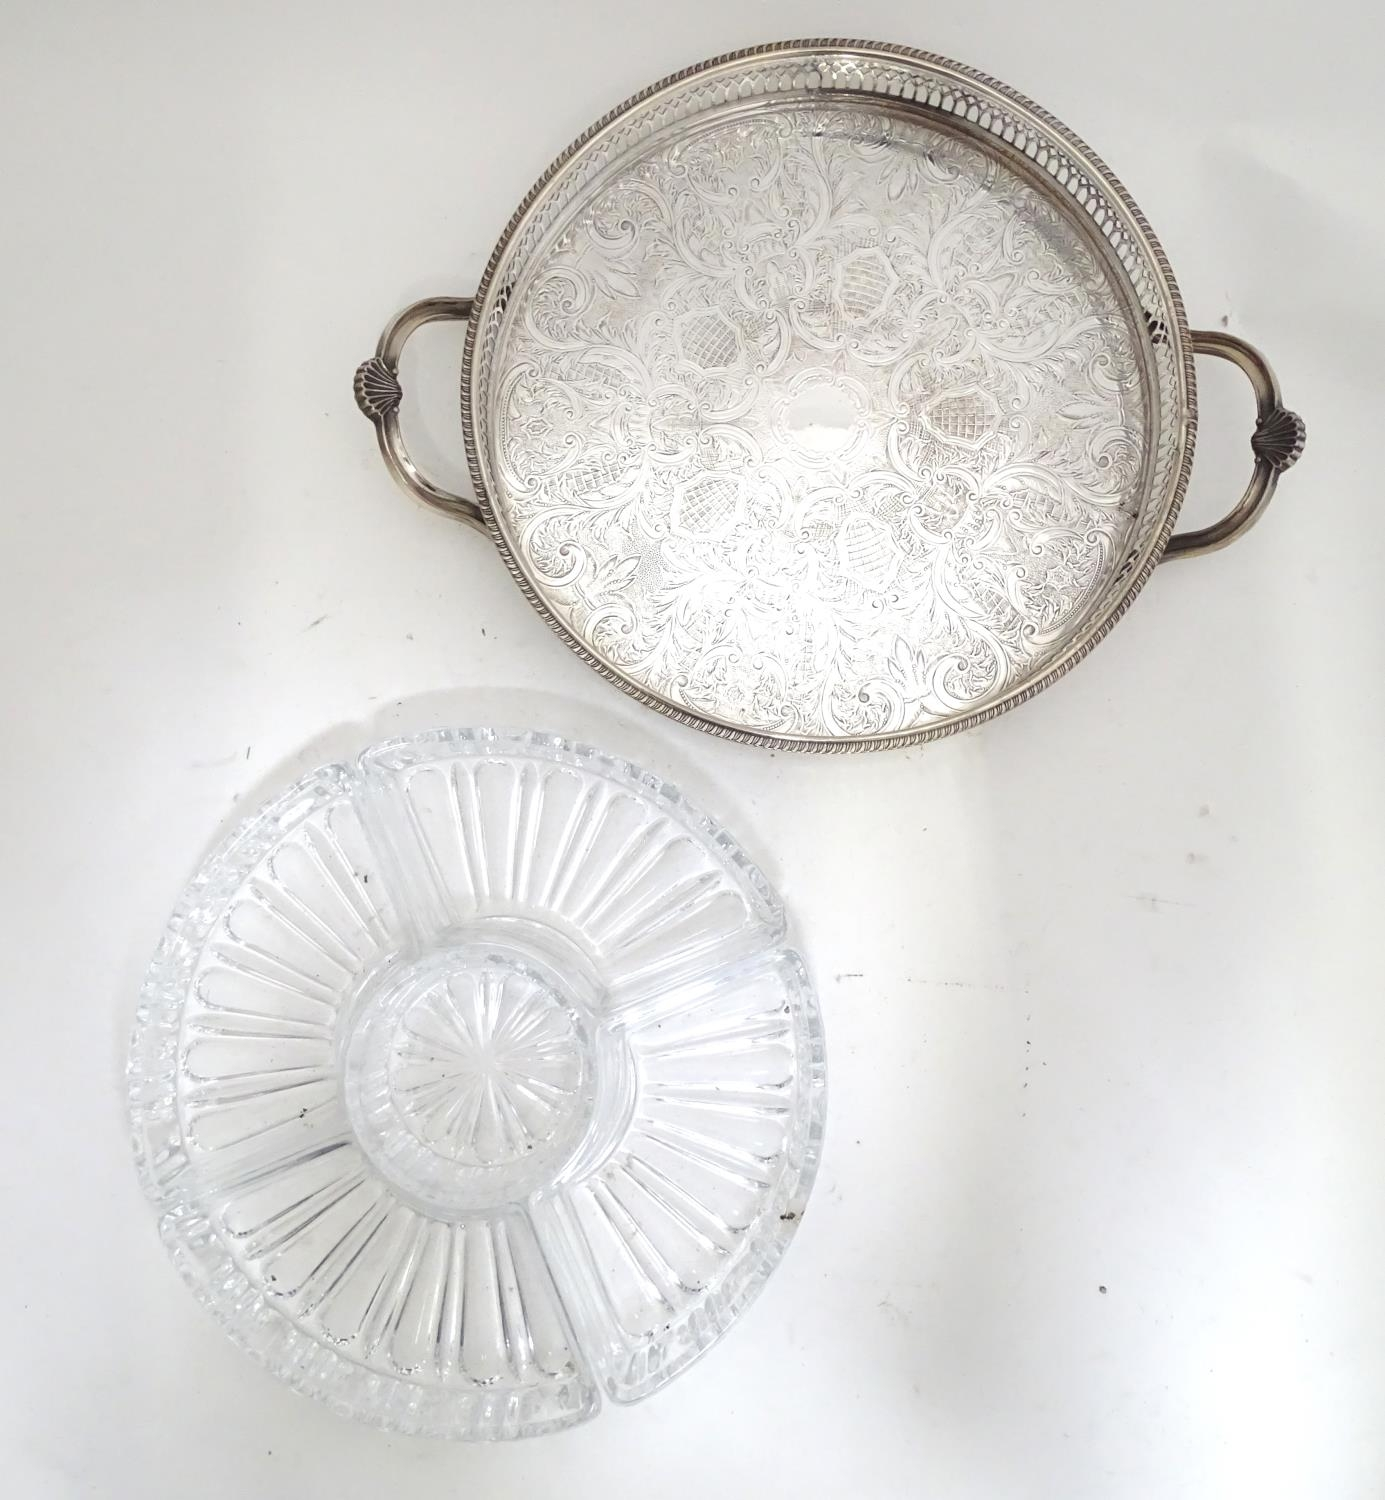 A silver plated entree dish with 5 inset glass sections Please Note - we do not make reference to - Image 4 of 6